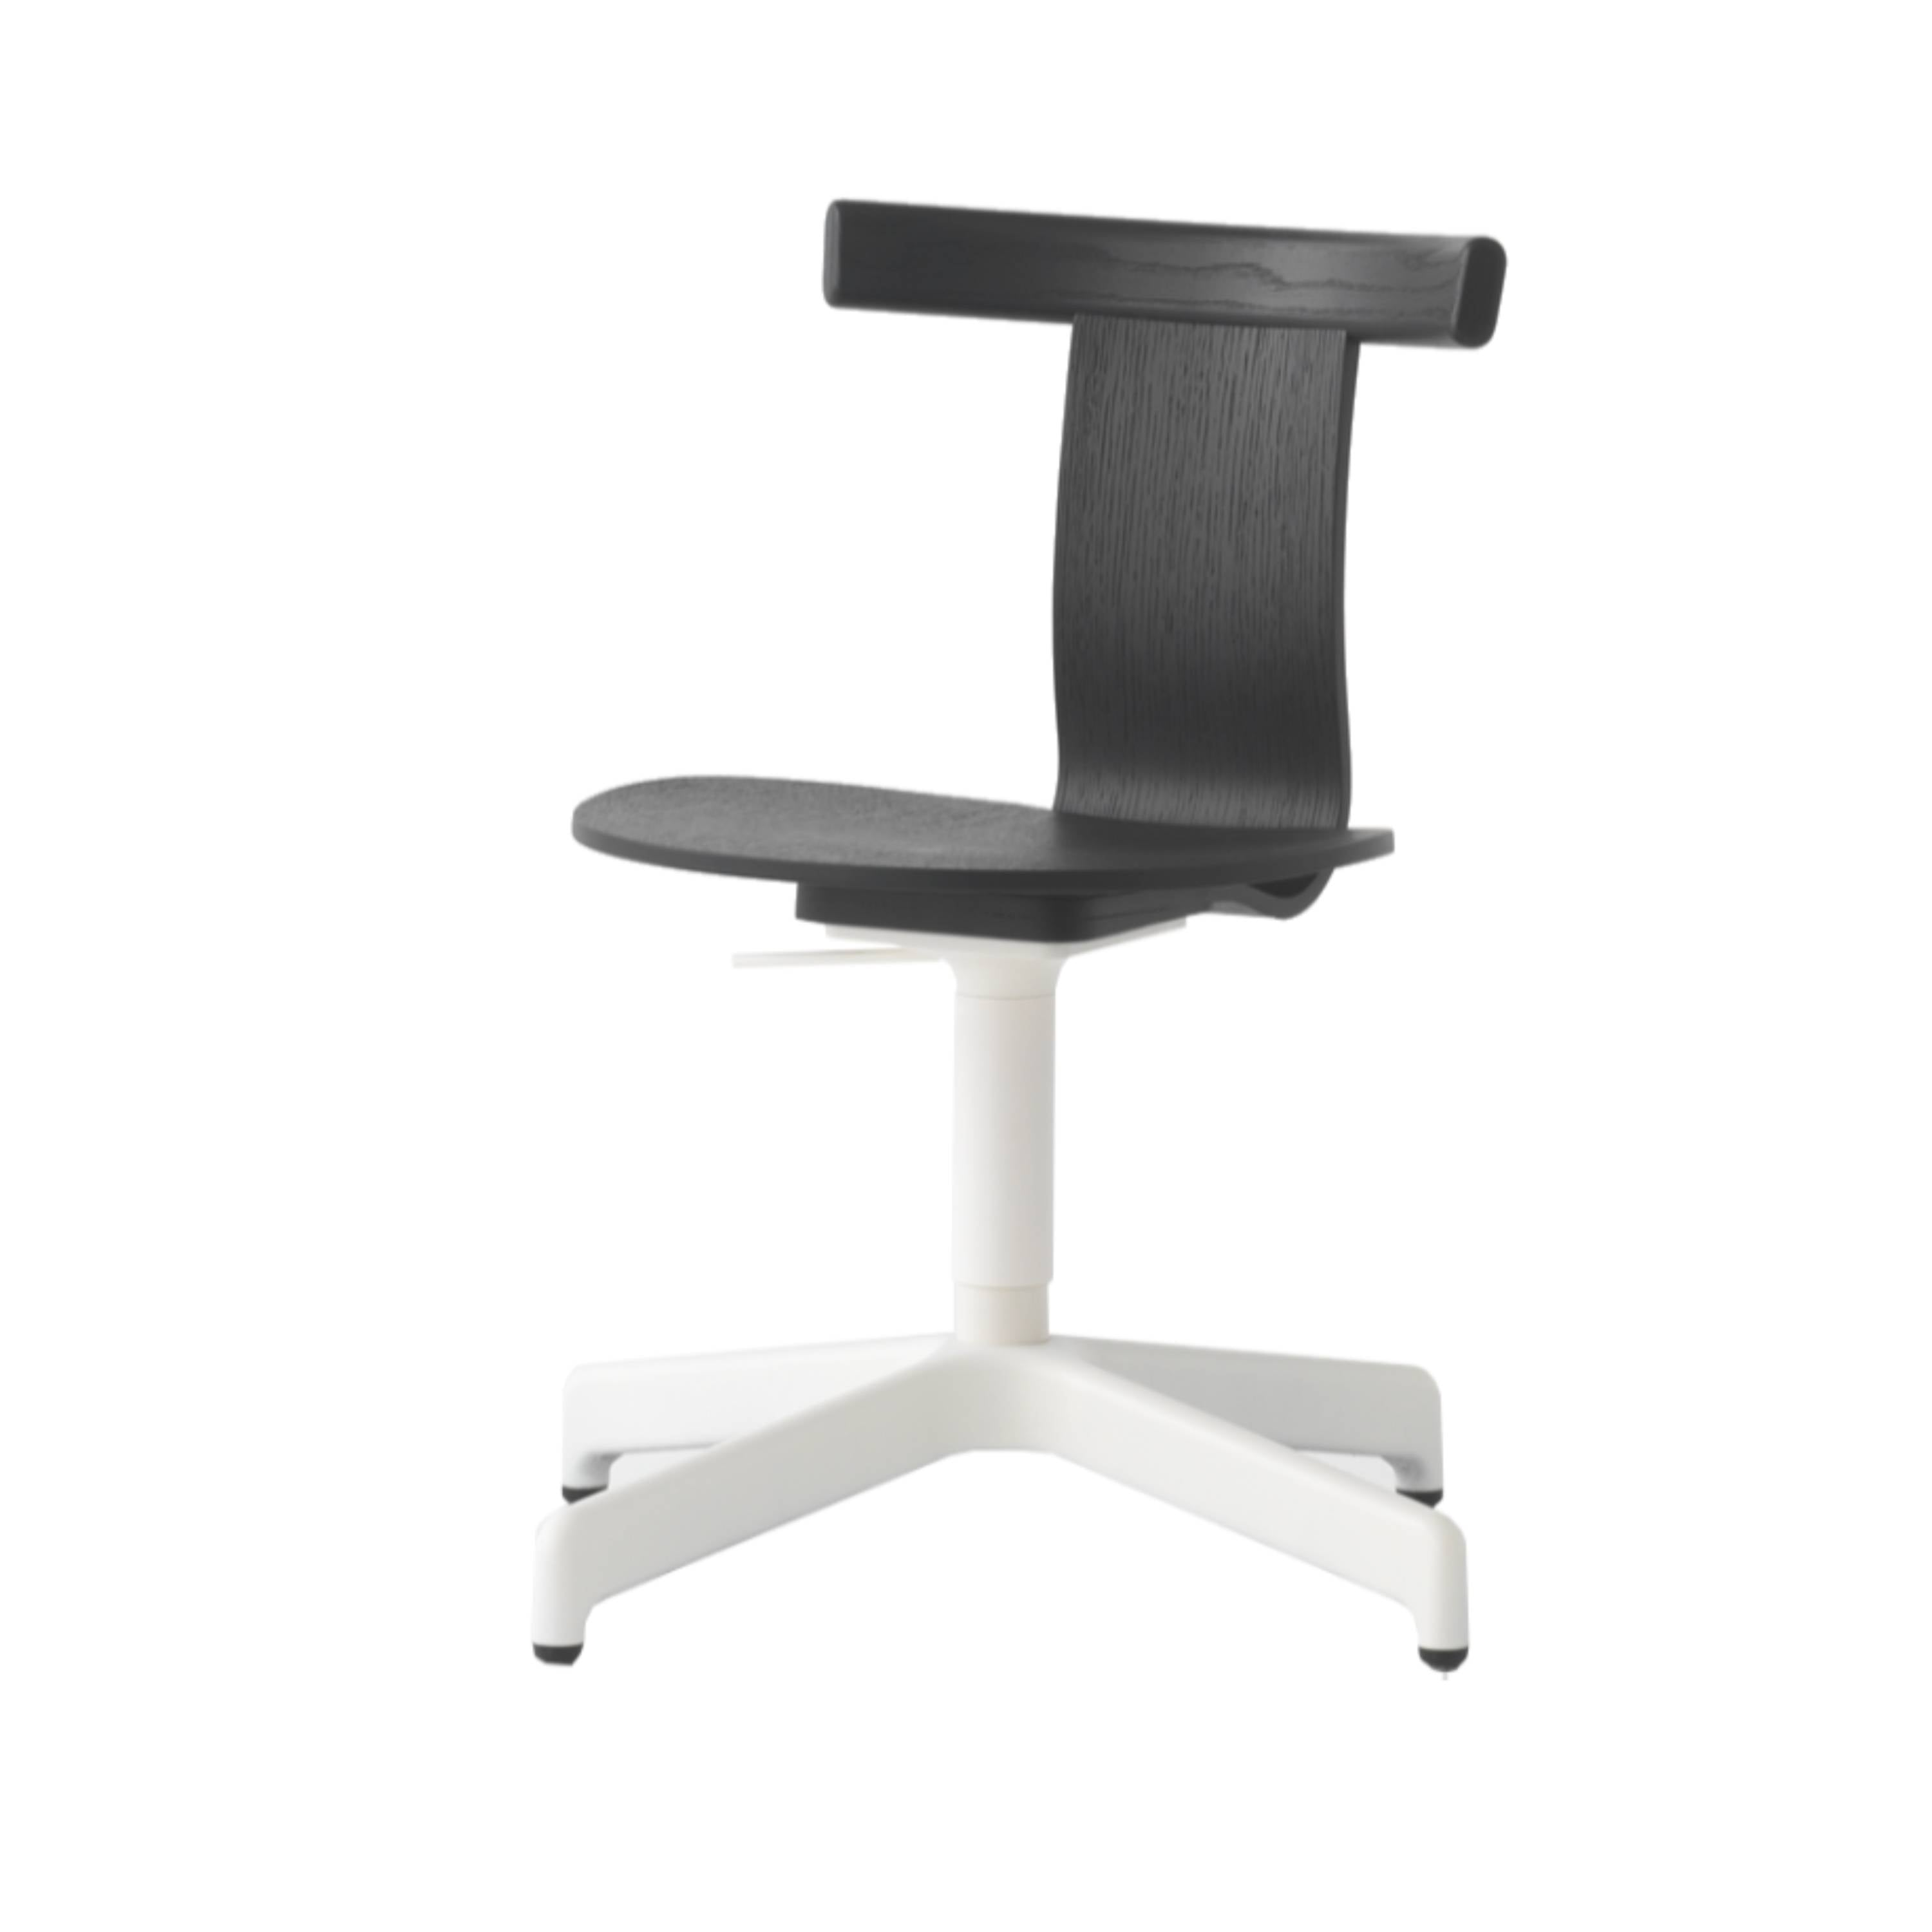 Jiro Swivel Chair: Black + White + Without Castors